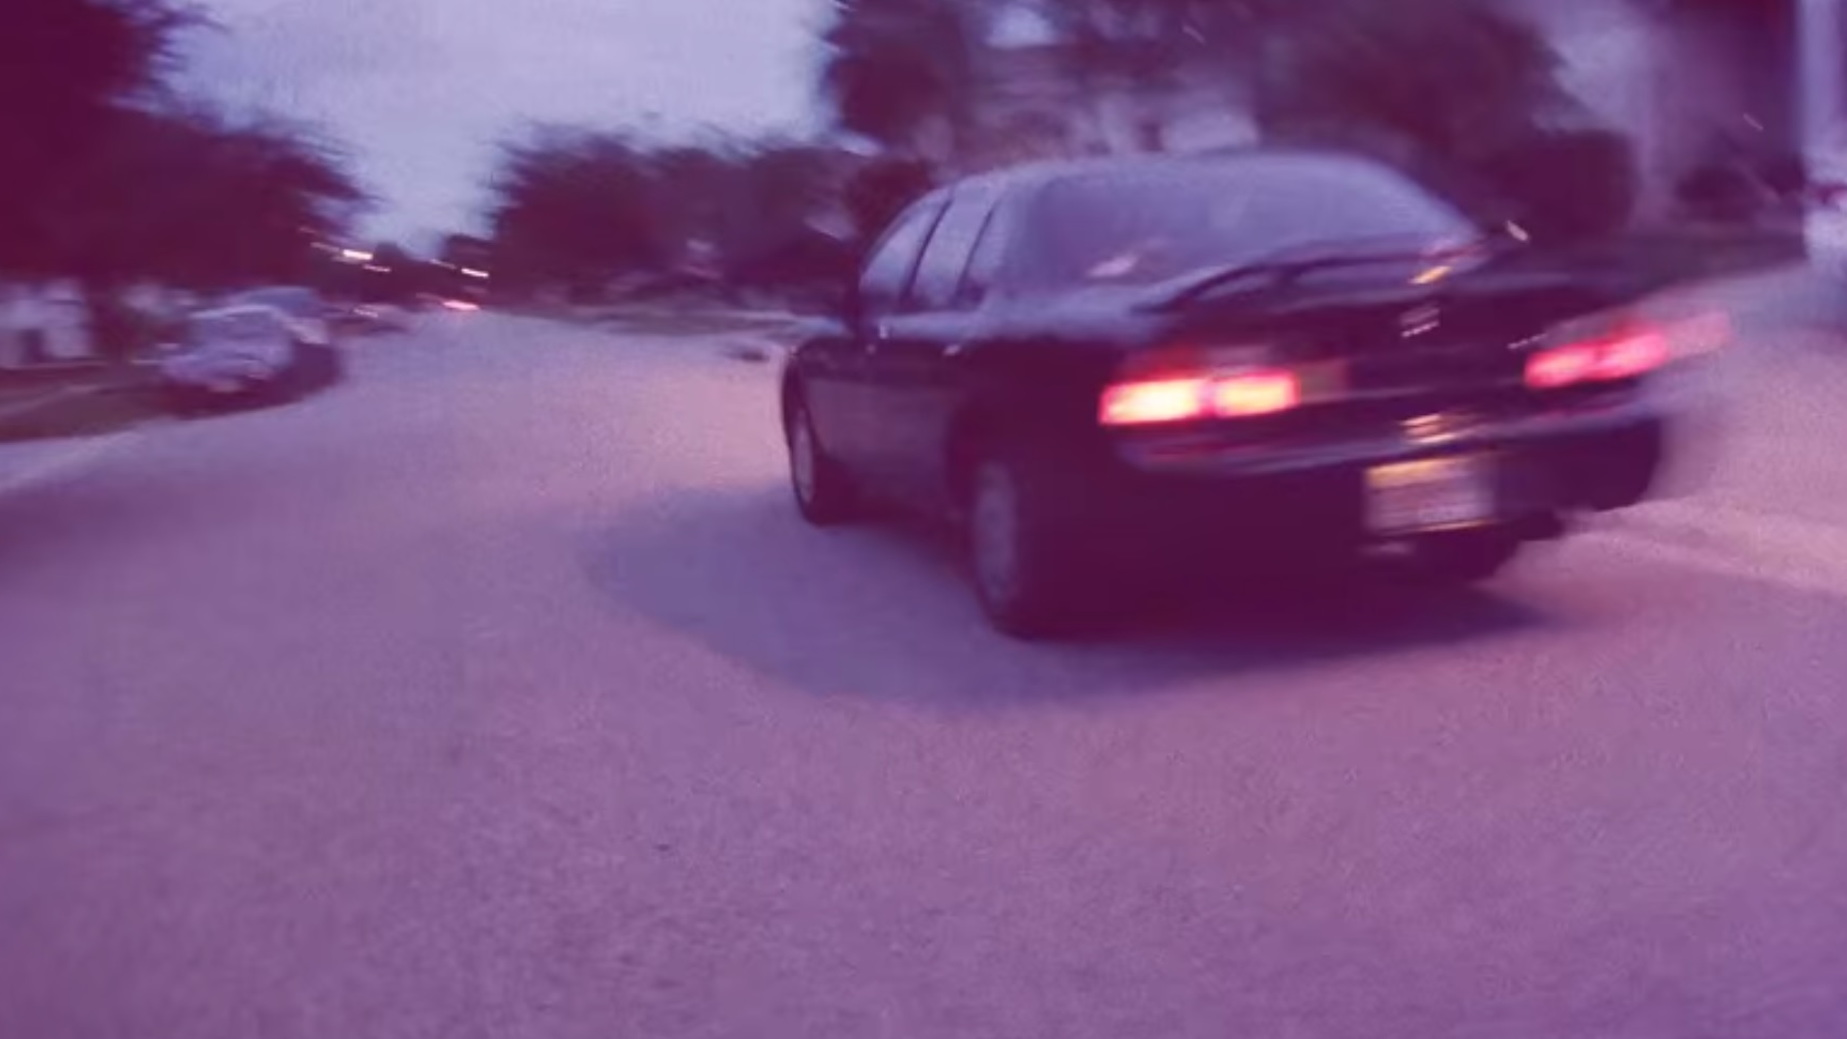 Project 1996 Nissan Maxima bought back by Nissan